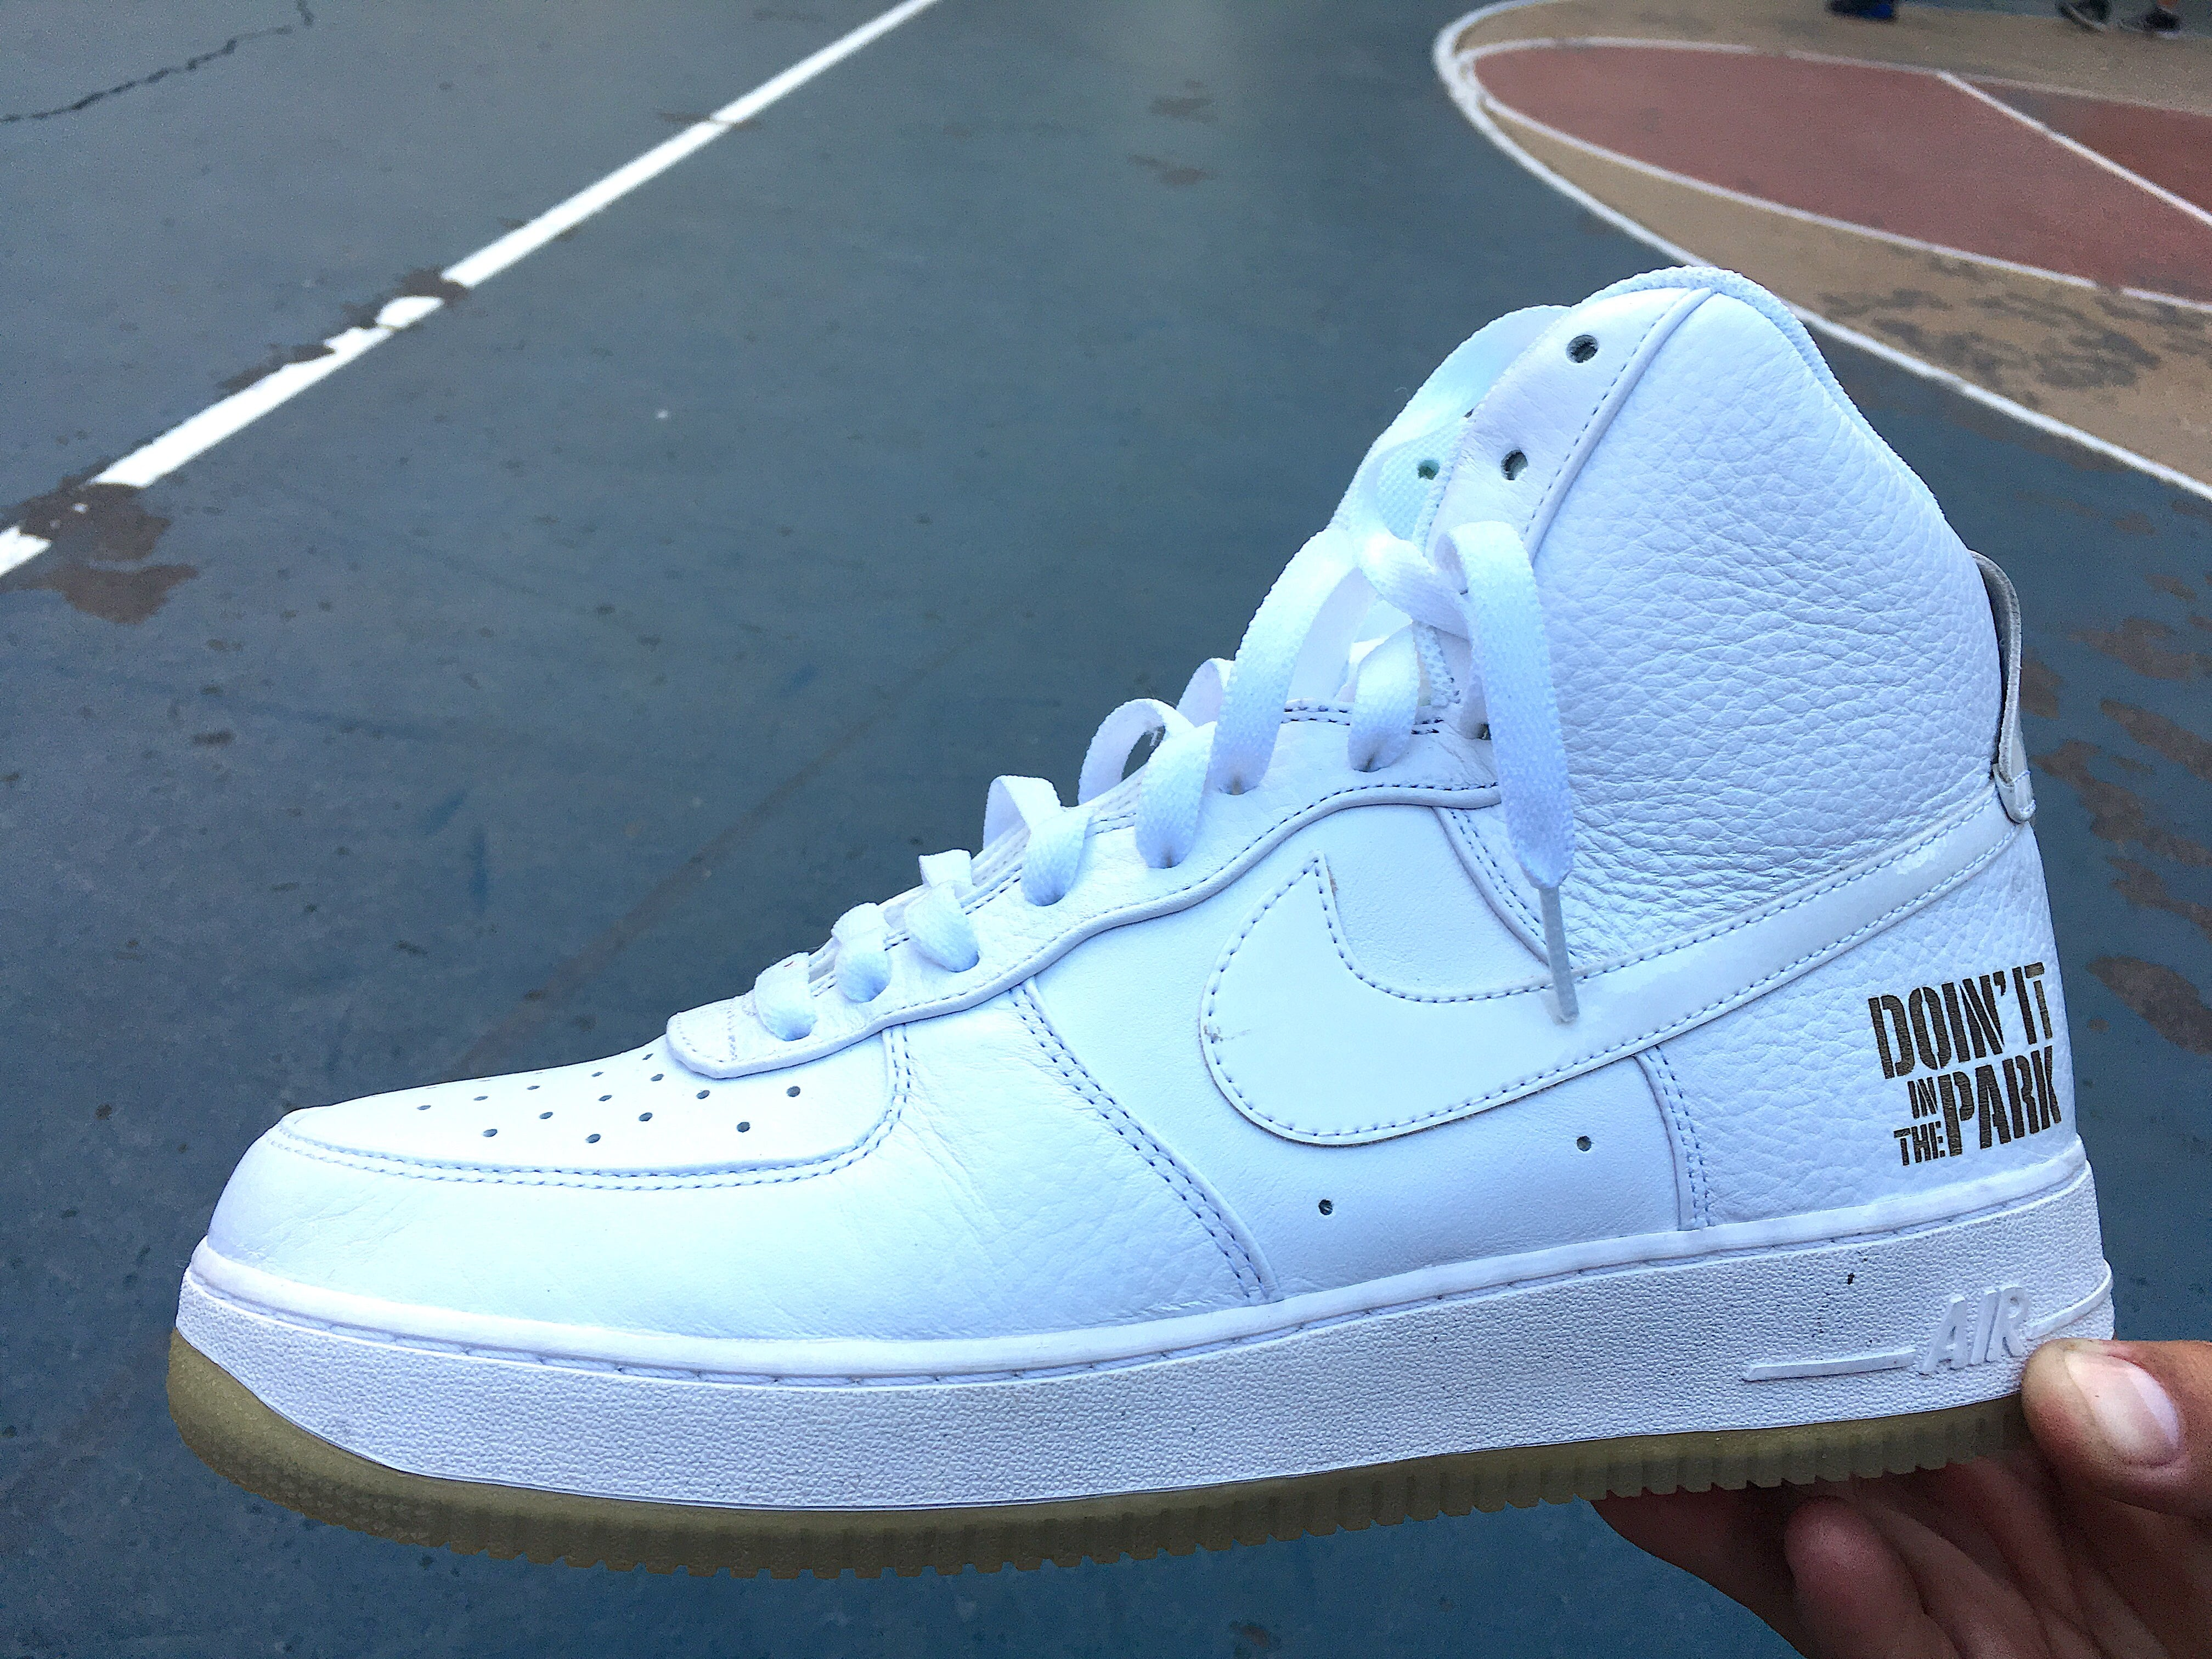 Nike Air Force 1 Hi x Doin' It In The Park - 2012